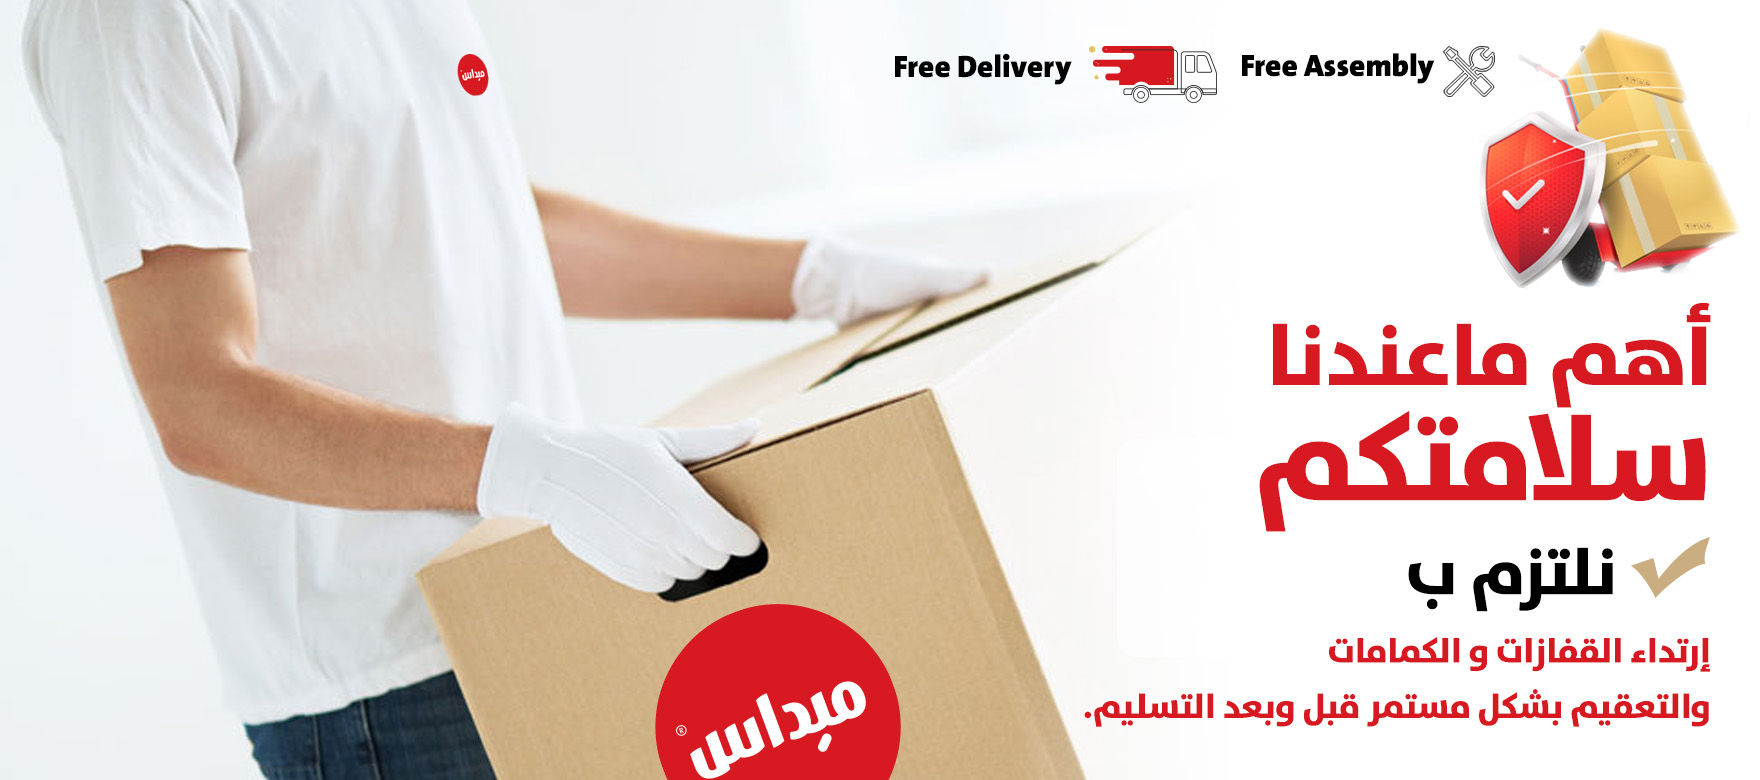 Kuwait Free Delivery Assembly Arb